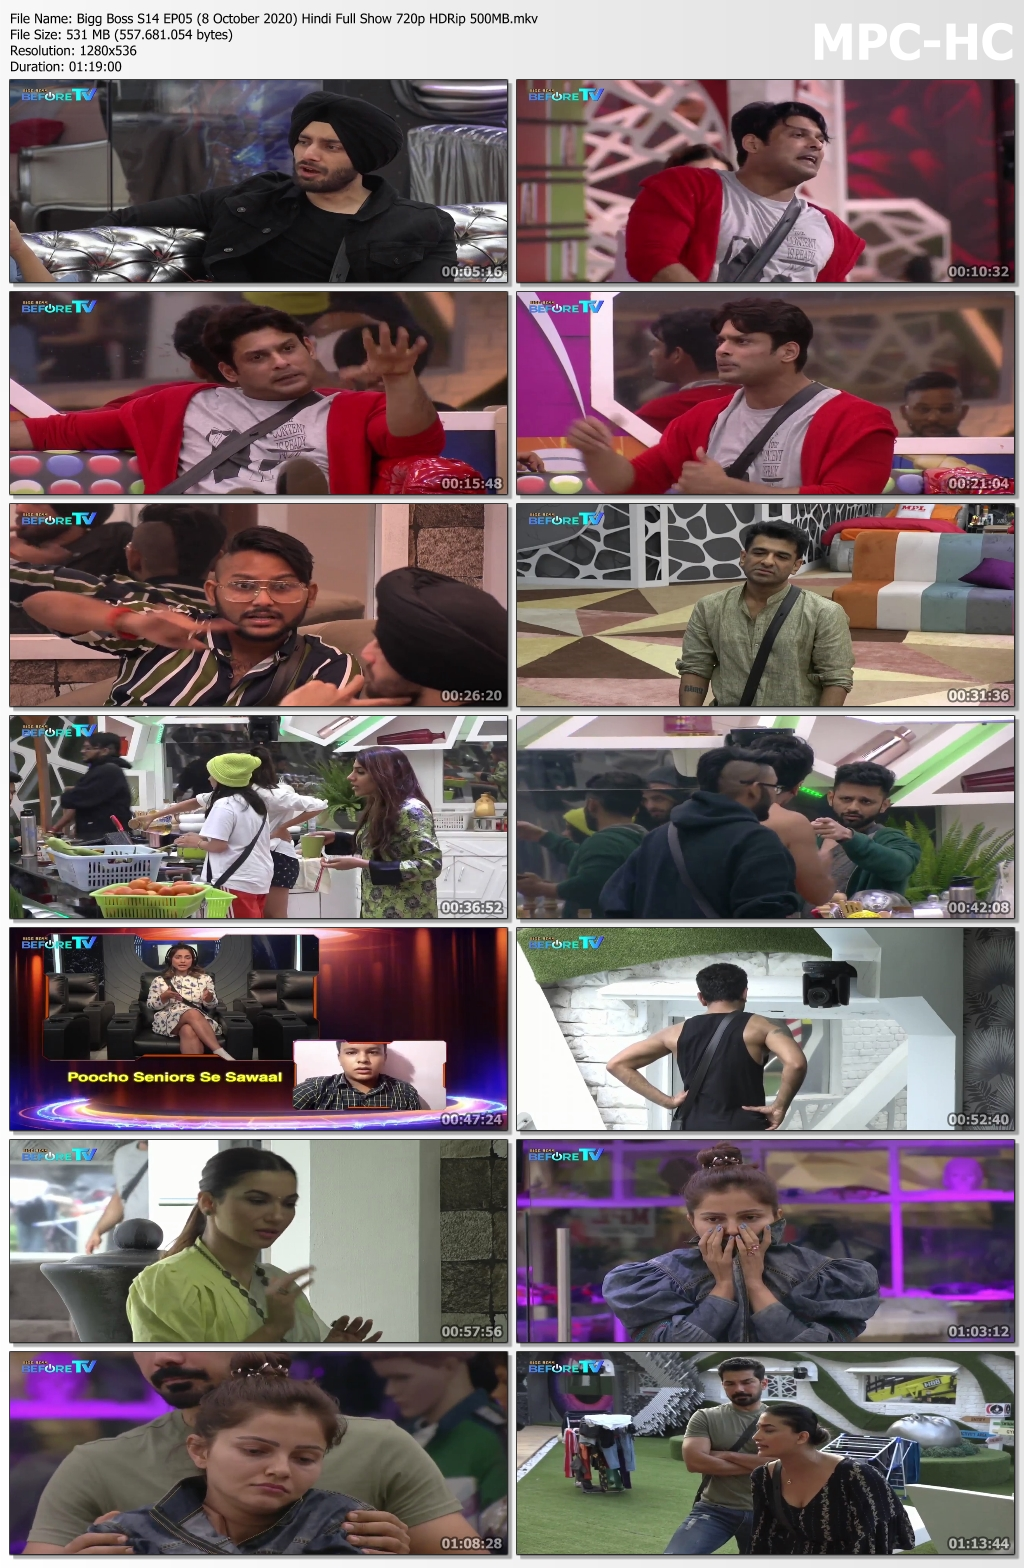 Bigg-Boss-S14-EP05-8-October-2020-Hindi-Full-Show-720p-HDRip-500-MB-mkv-thumbs